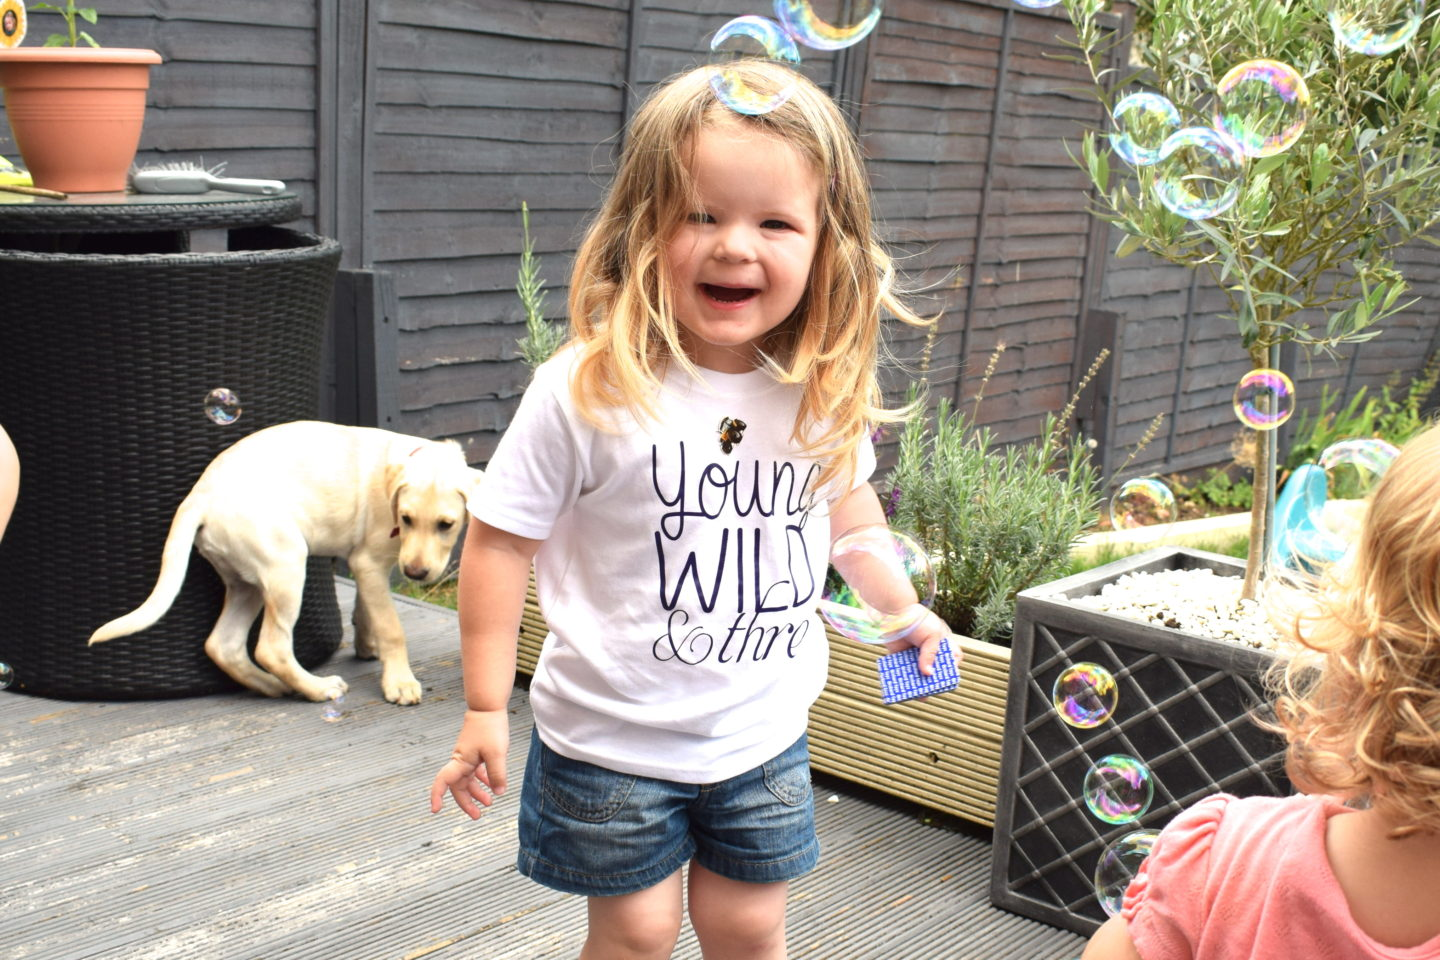 three year old laughing at bubbles in the garden